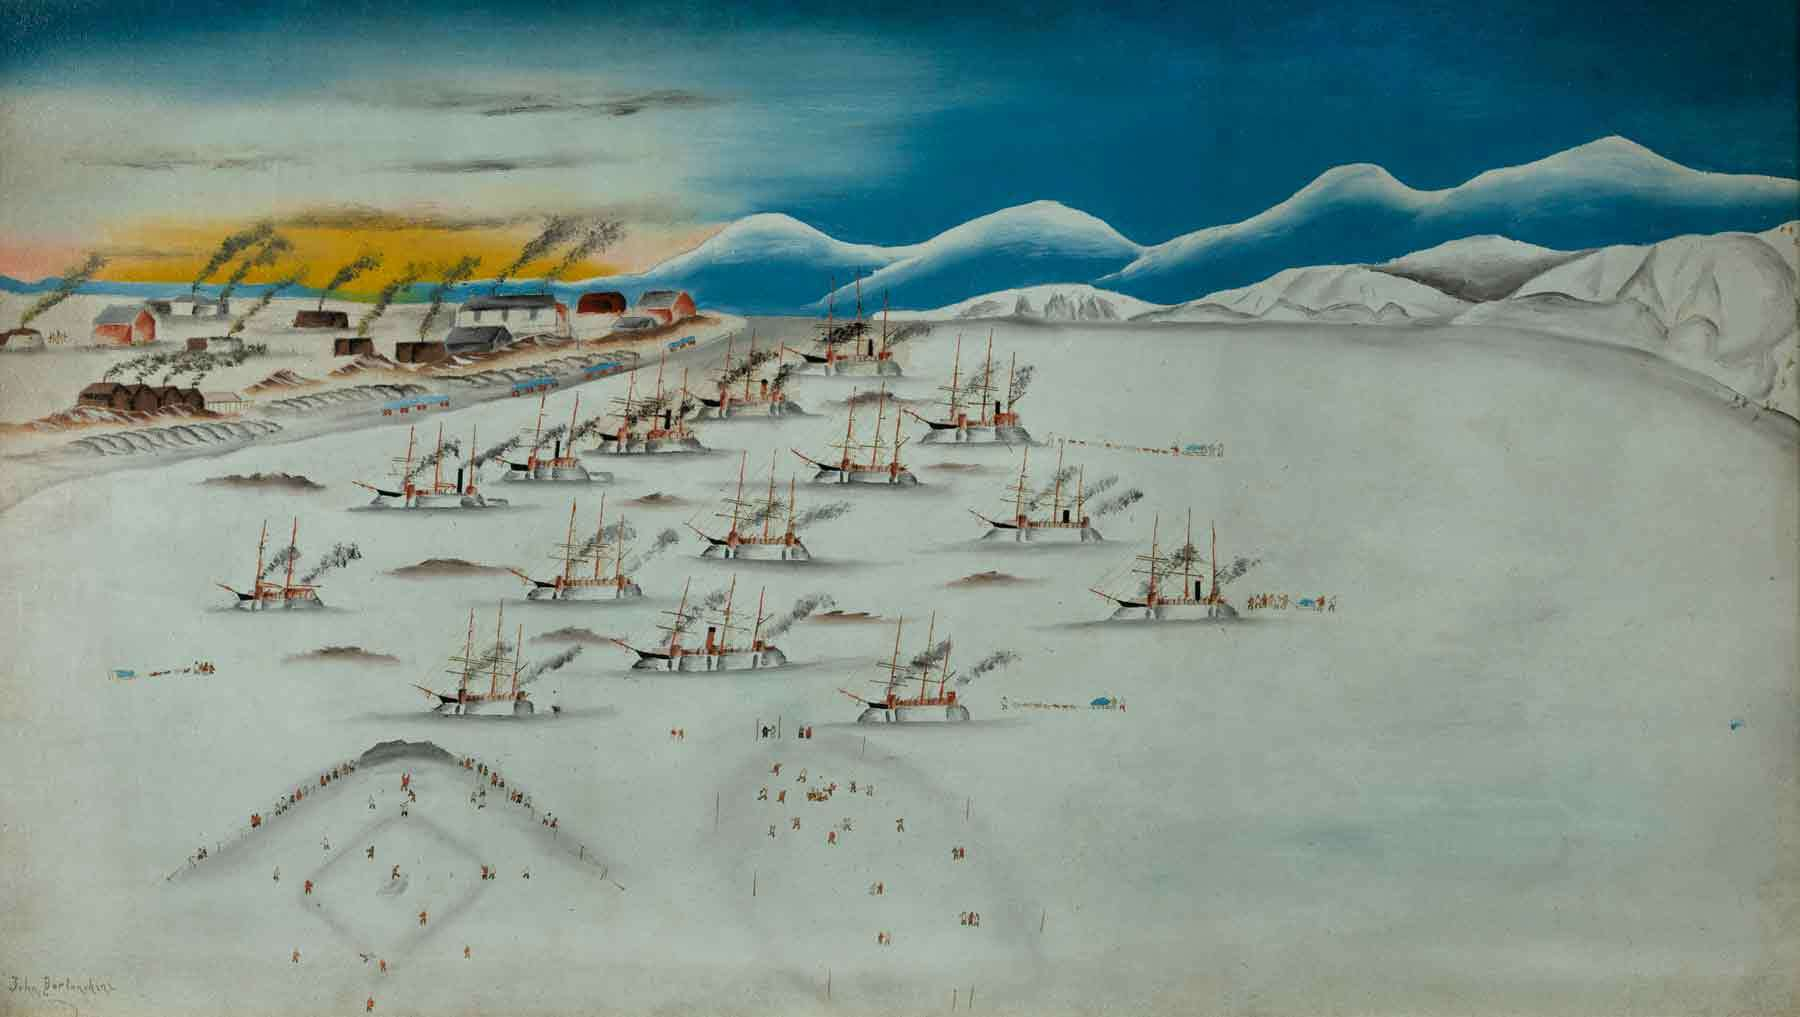 Michele Felice Cornè (1752-1845). Ship America on the Grand Banks, about 1800. Oil on canvas. Gift of Mrs. Francis B. Crowninshield, 1953. © 2014 Peabody Essex Museum